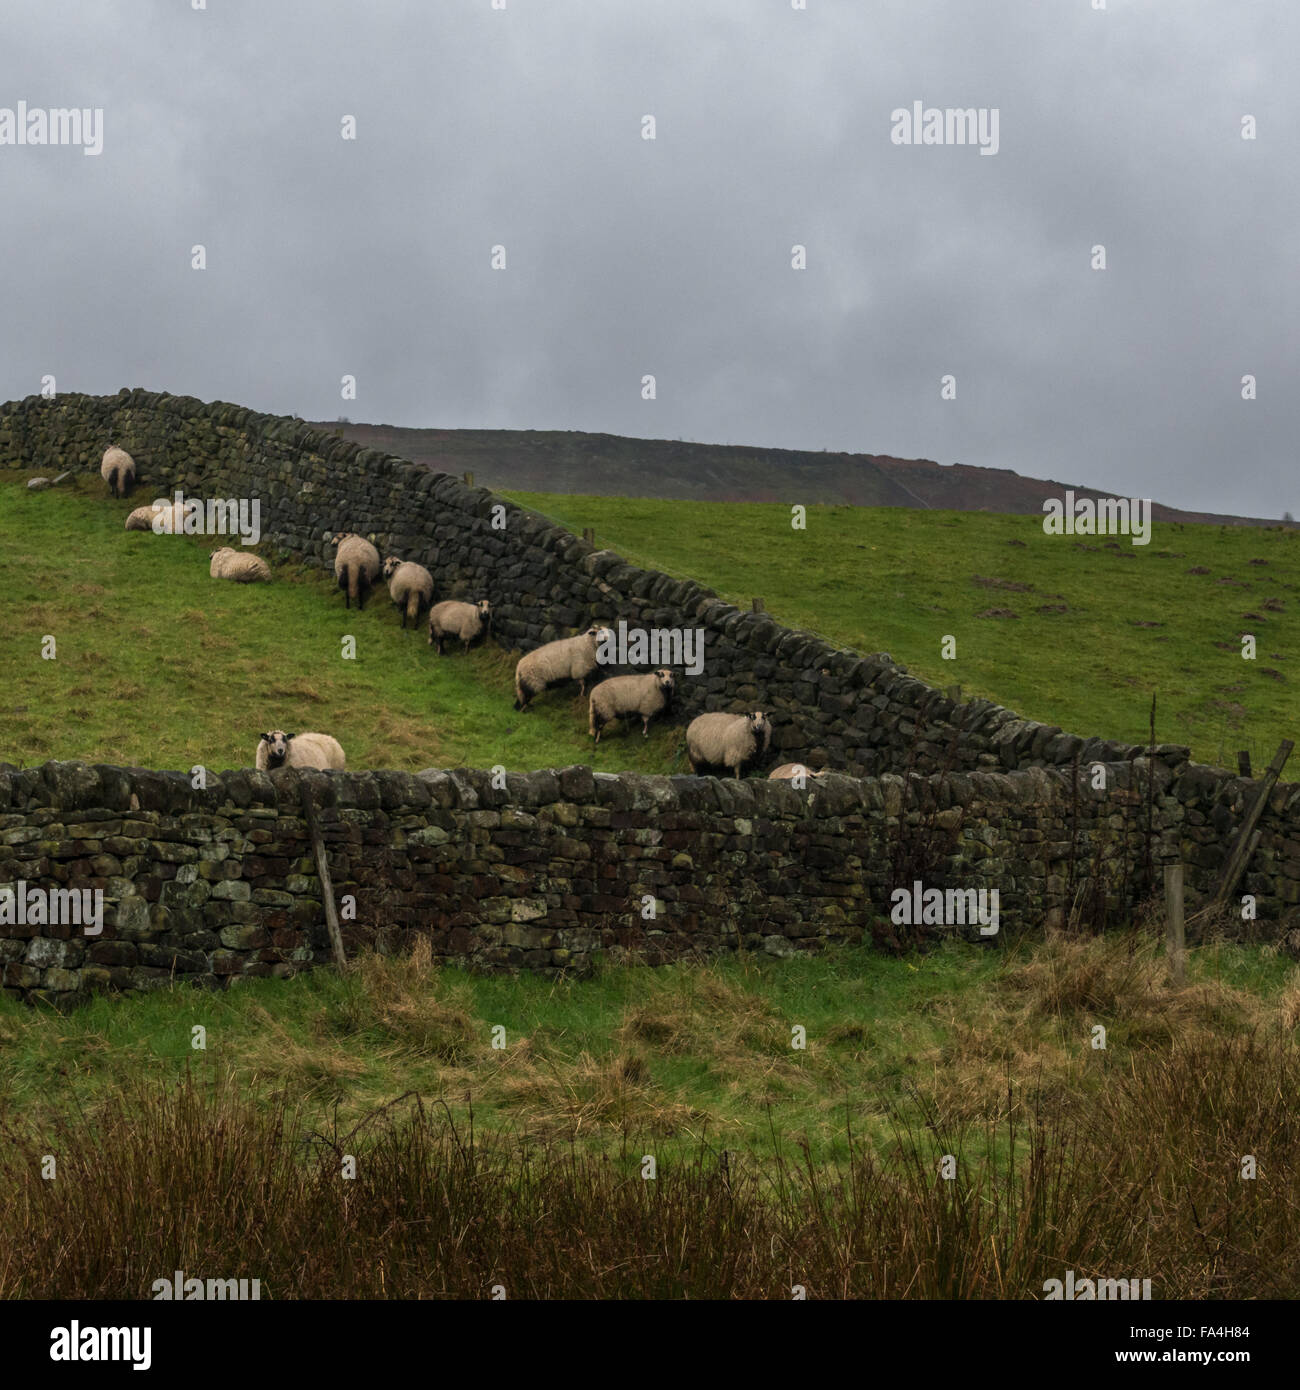 Sheep sheltering from bad weather behind a stone wall in Ilkley, Yorkshire, England, UK - Stock Image